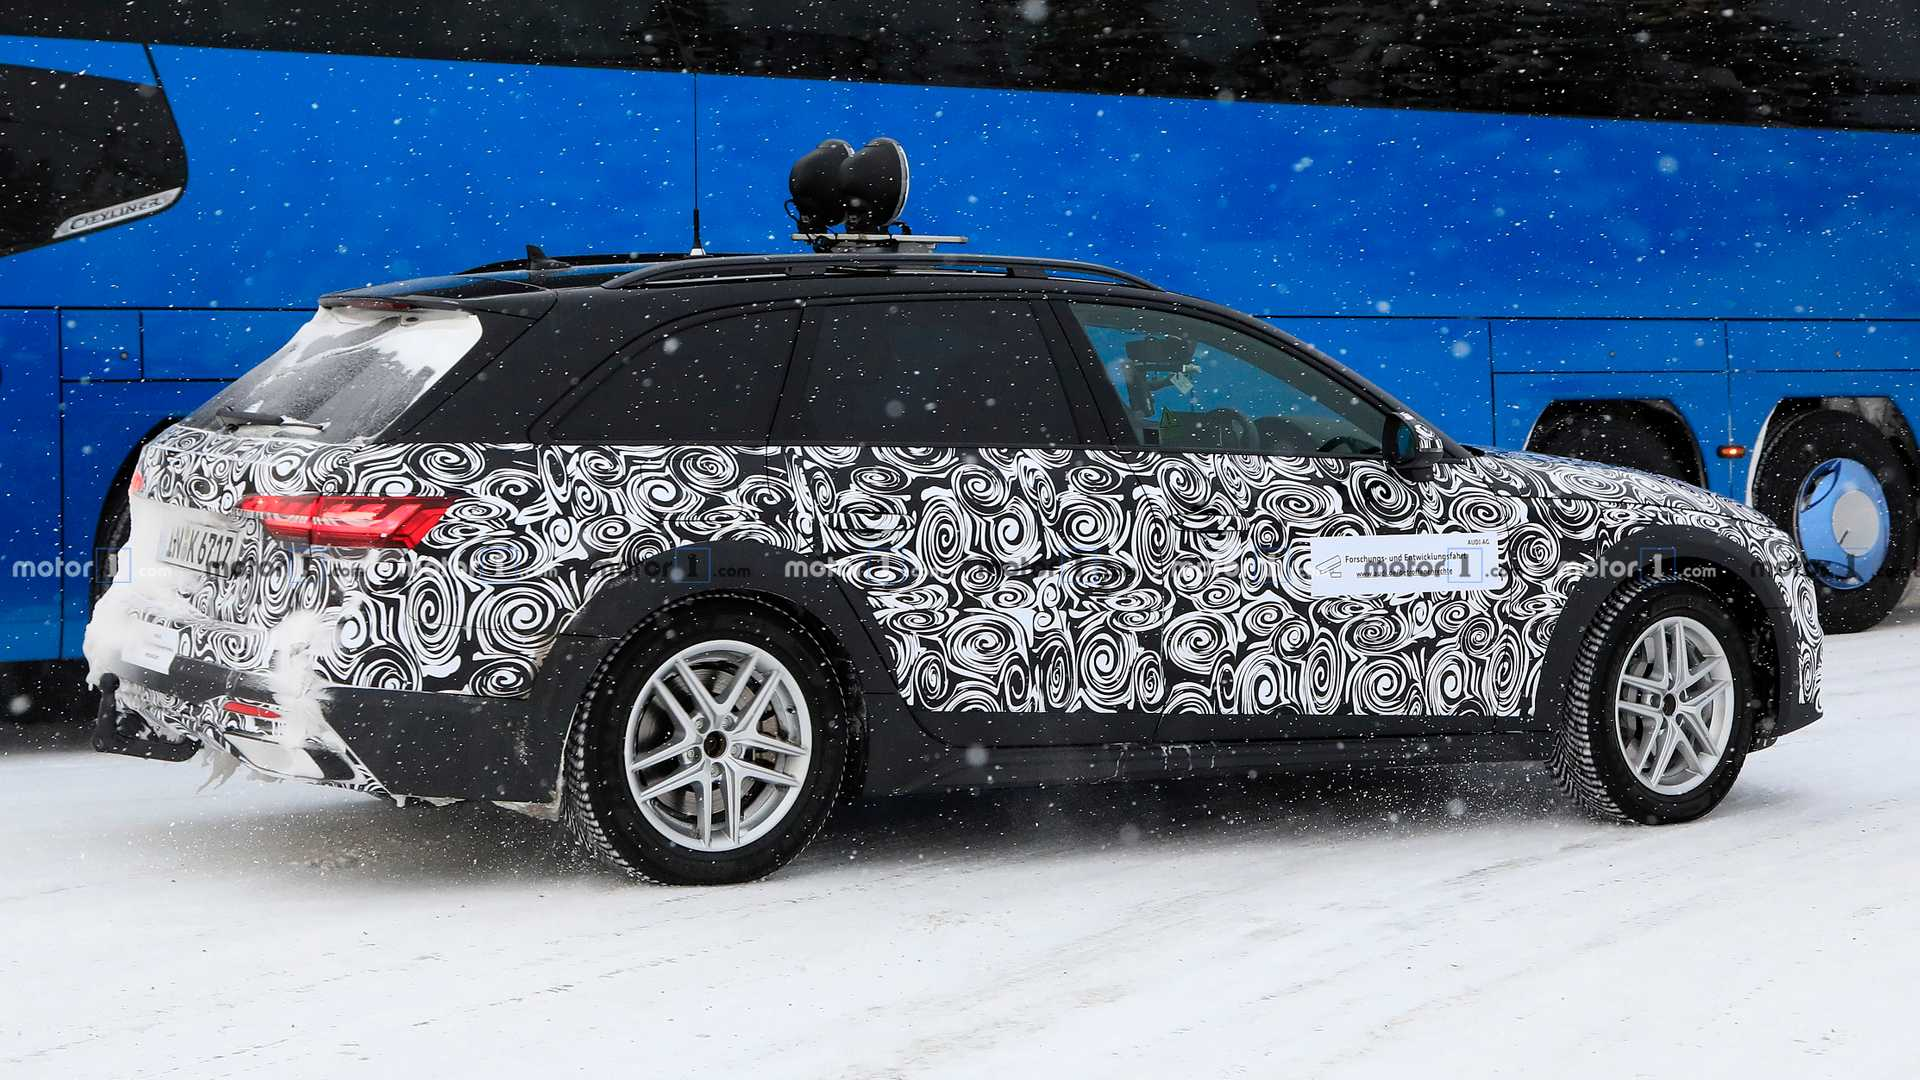 New Audi A4 Allroad Spied For The First Time [UPDATE]